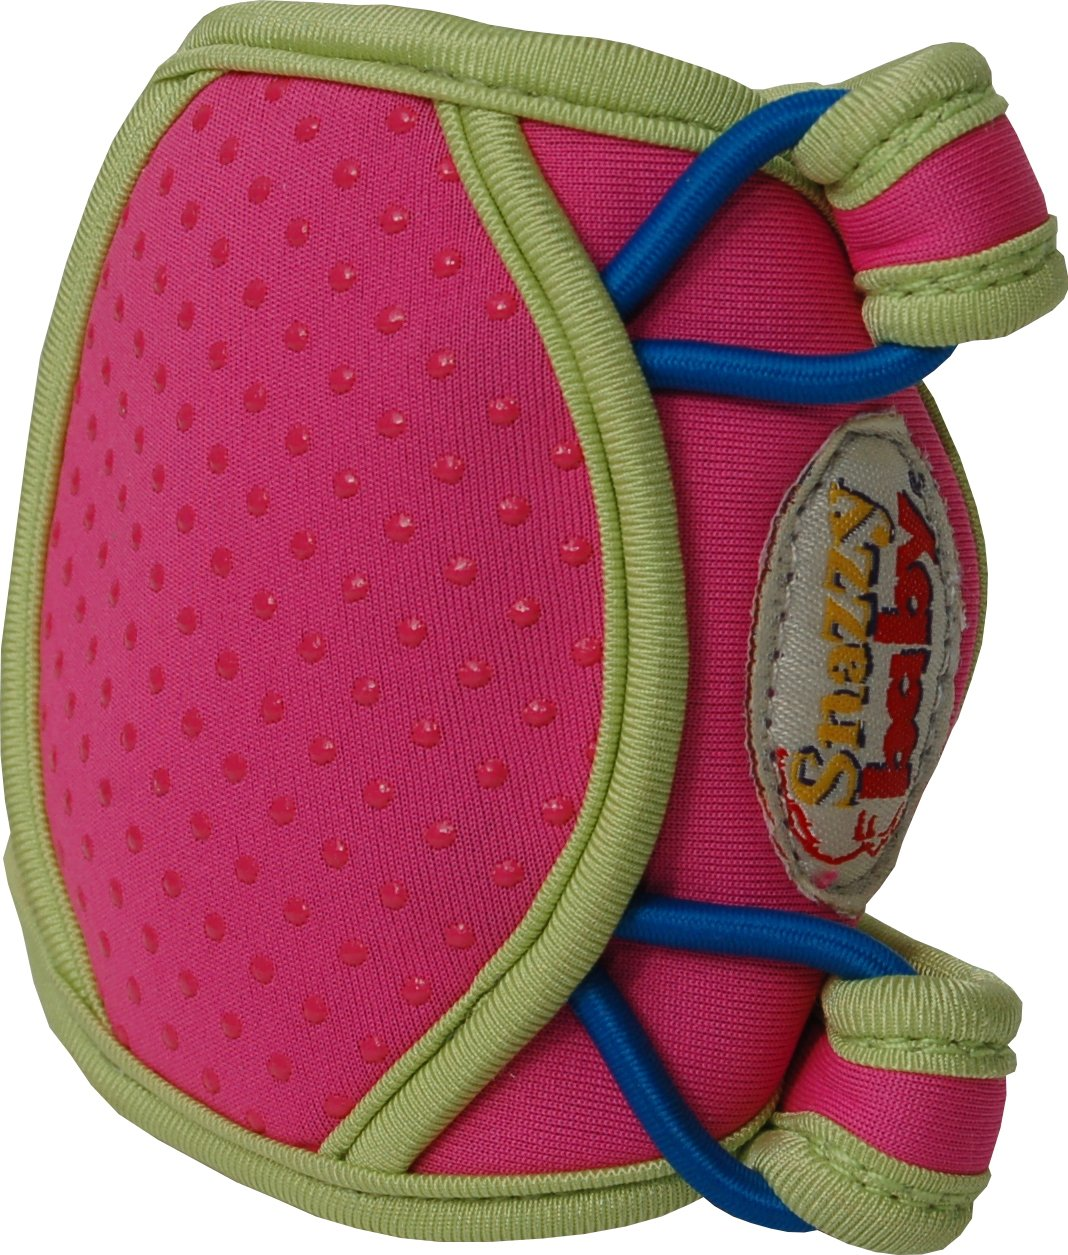 Snazzy Baby Knee Pads, Pink Pizazz